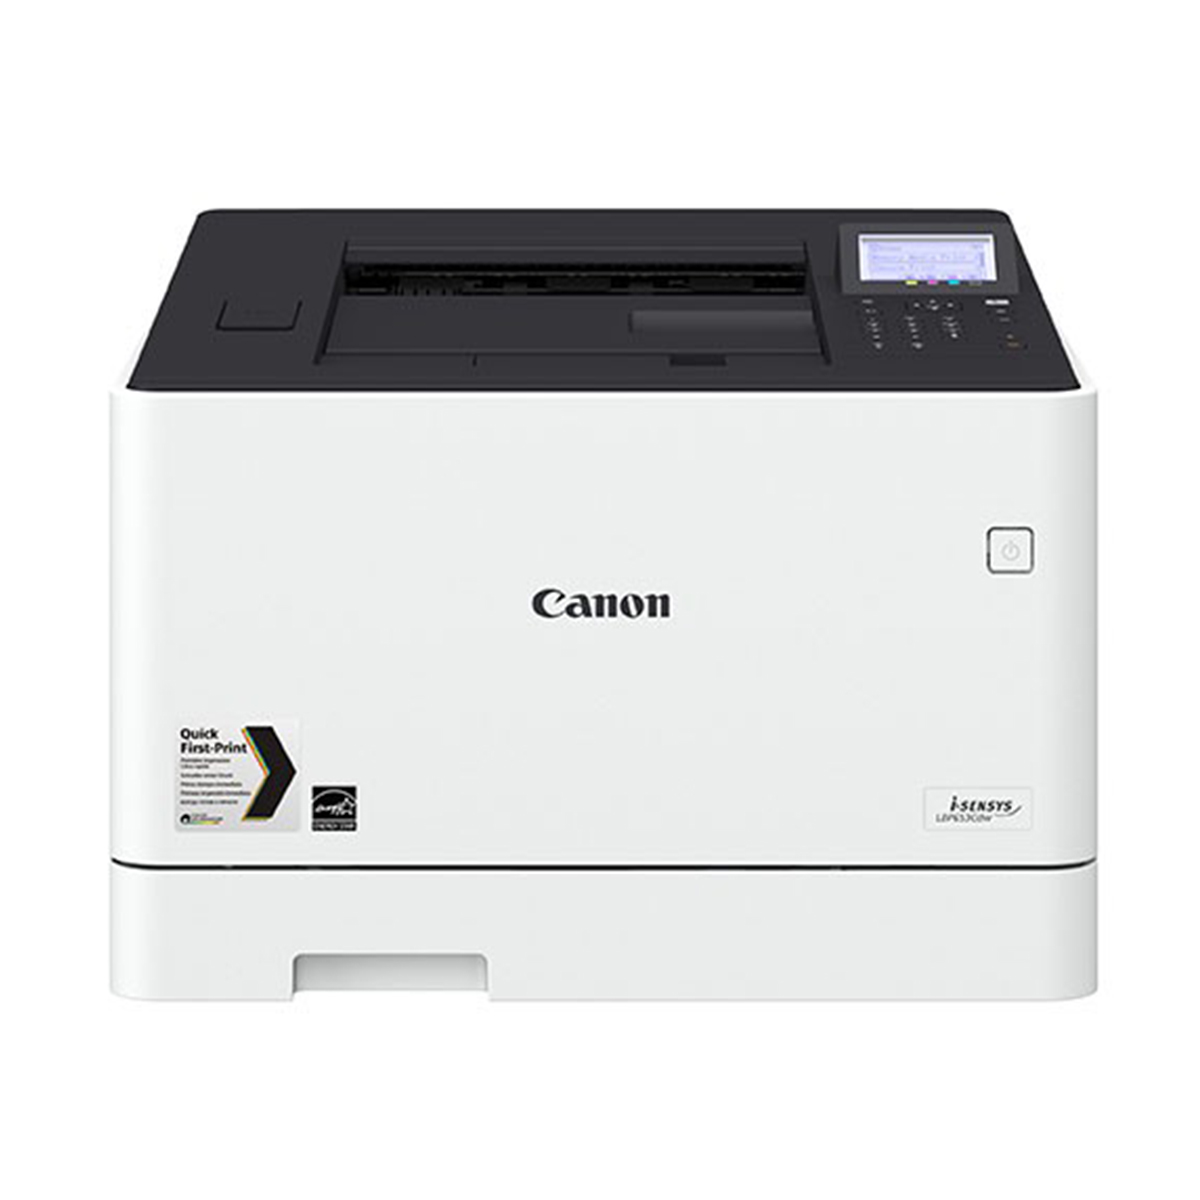 Canon i-SENSYS LBP653Cdw Colour Laser Printer